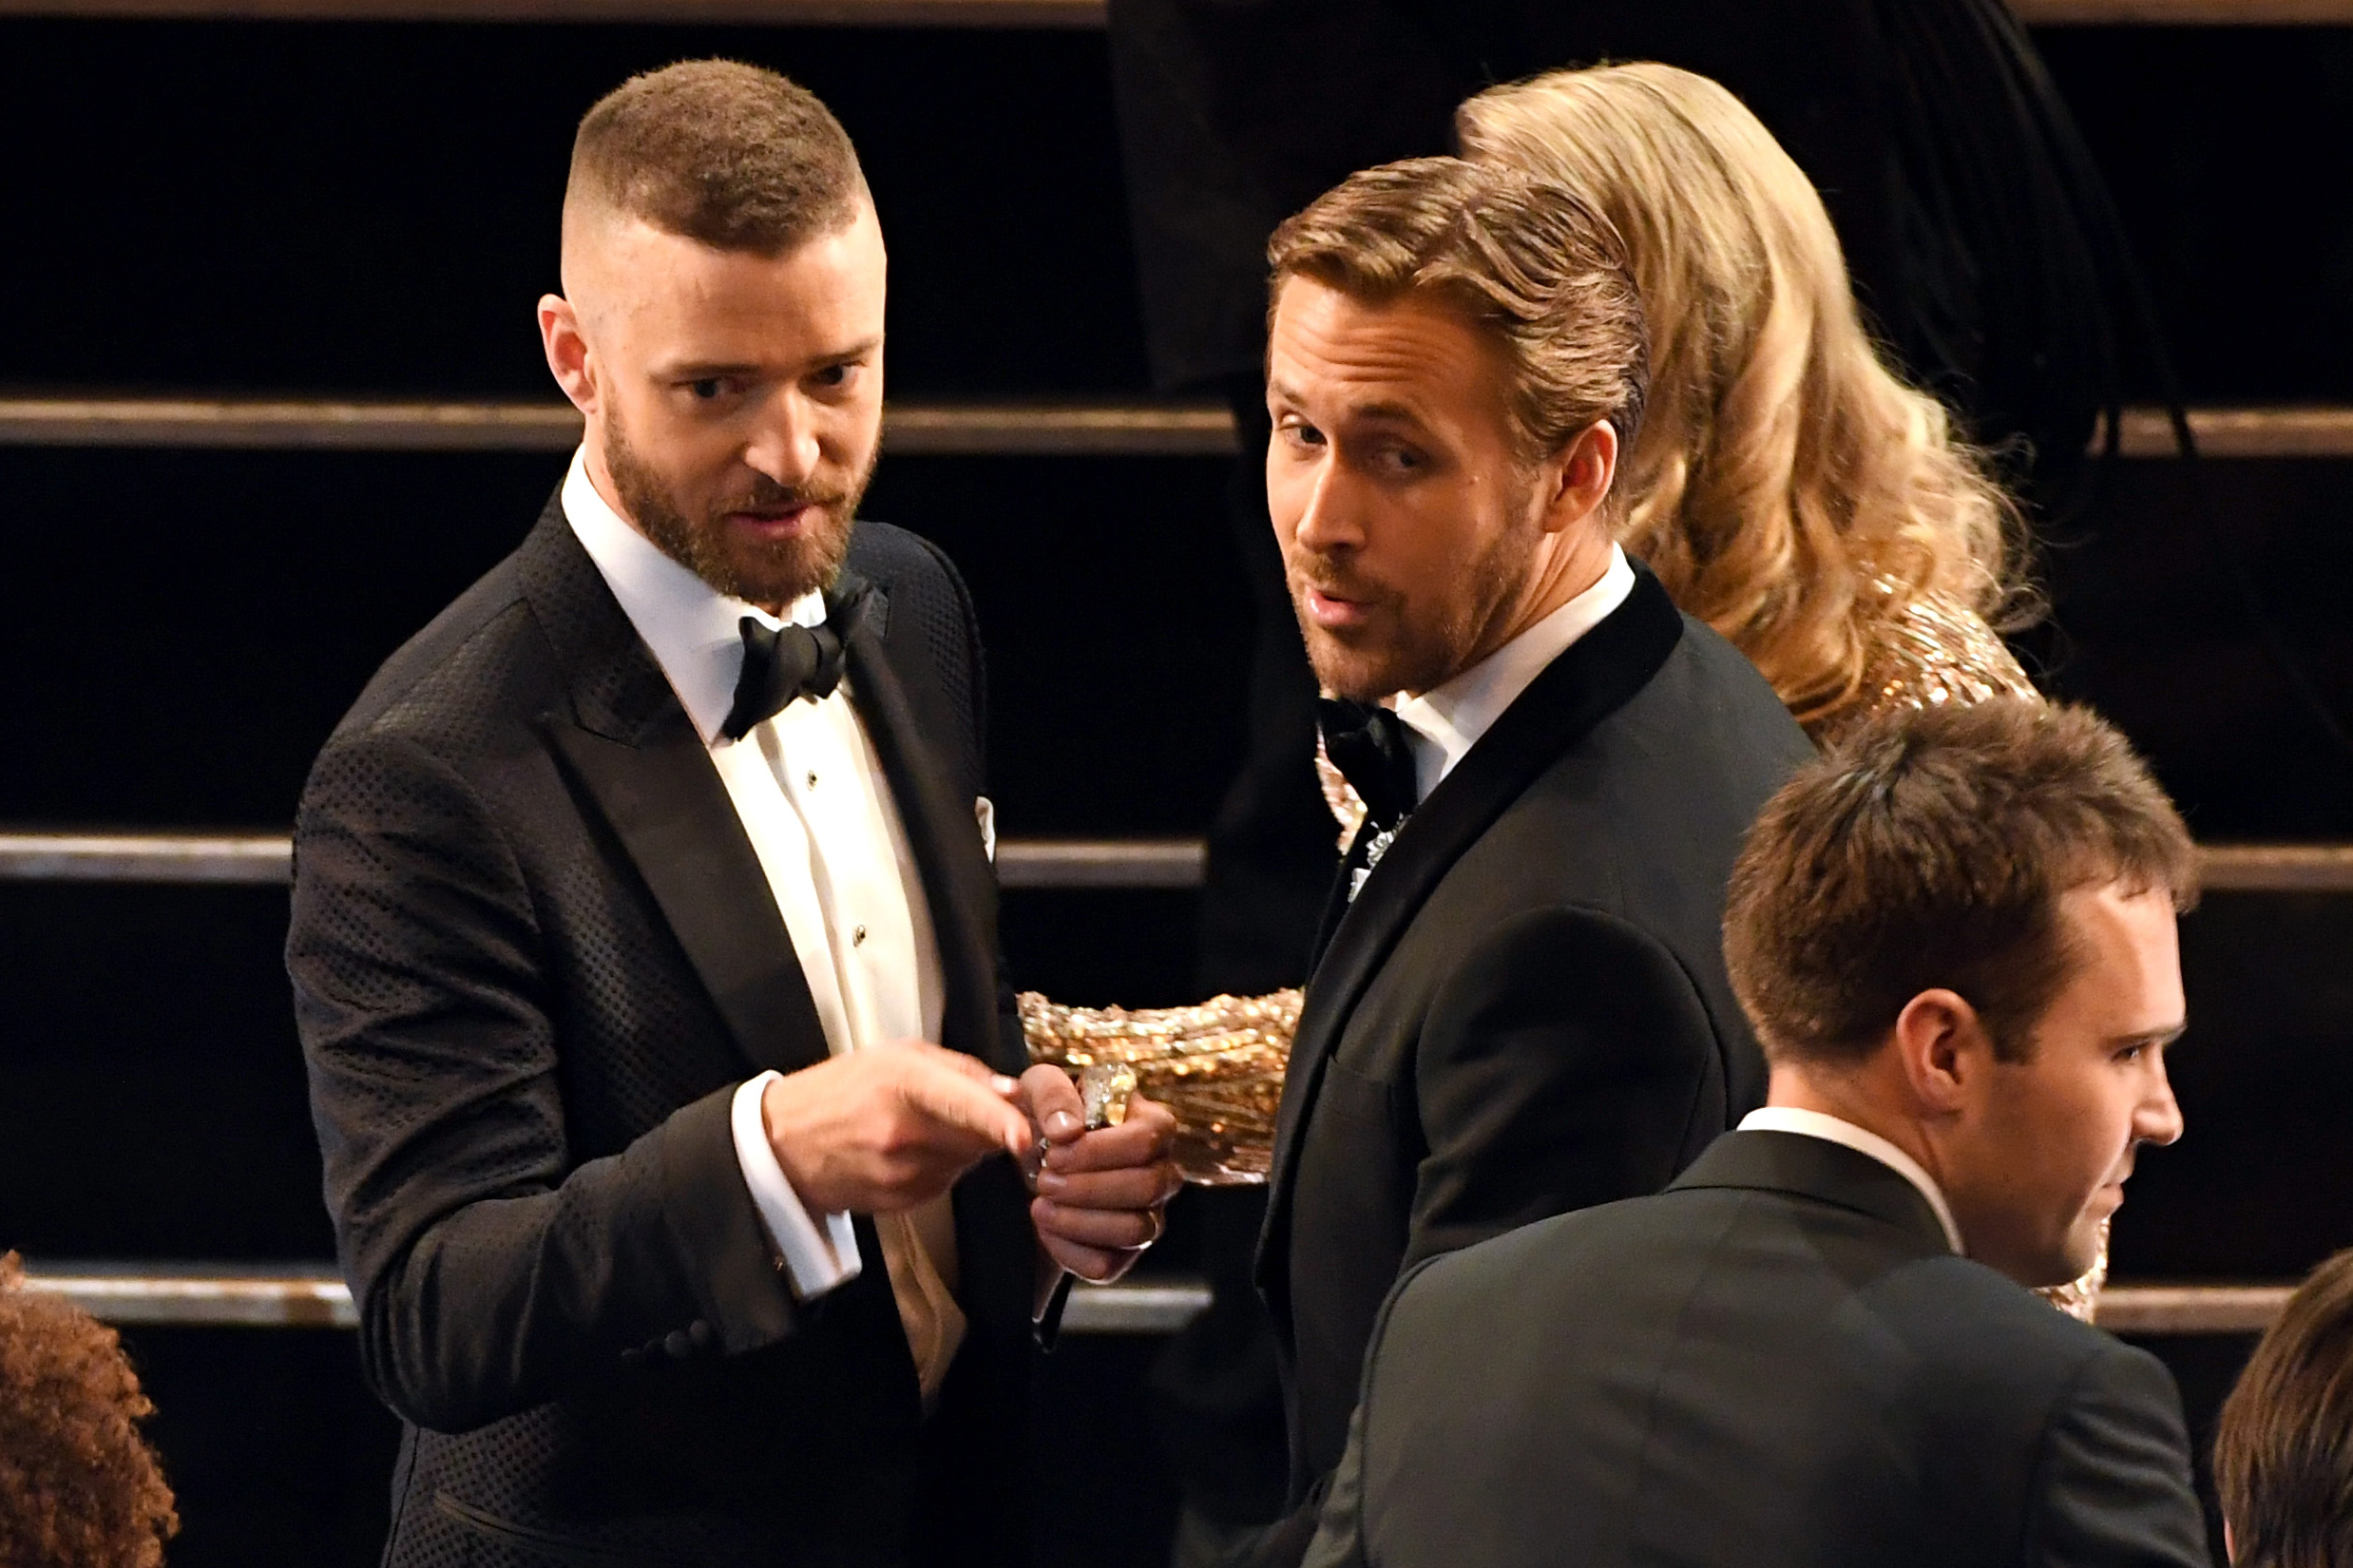 Justin Timberlake and Ryan Gosling during the 89th Annual Academy Awards, on Feb. 26, 2017 in Hollywood, Calif.